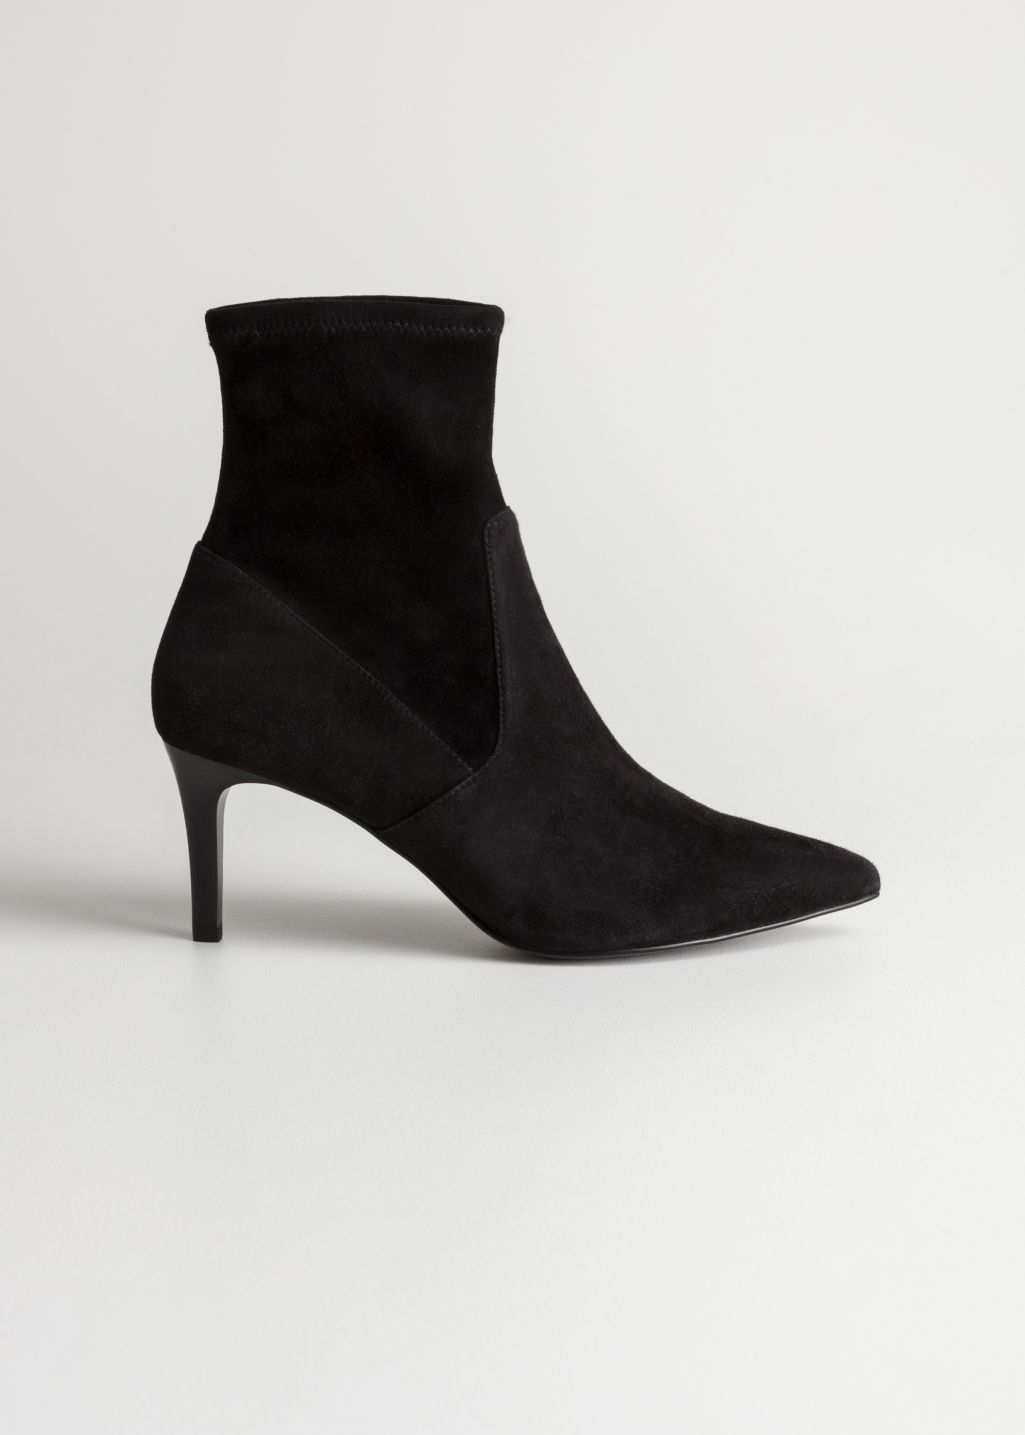 Front Image Of Stories Stretch Suede Ankle Boots In Black Kitten Heel Boots Kitten Heel Ankle Boots Boots